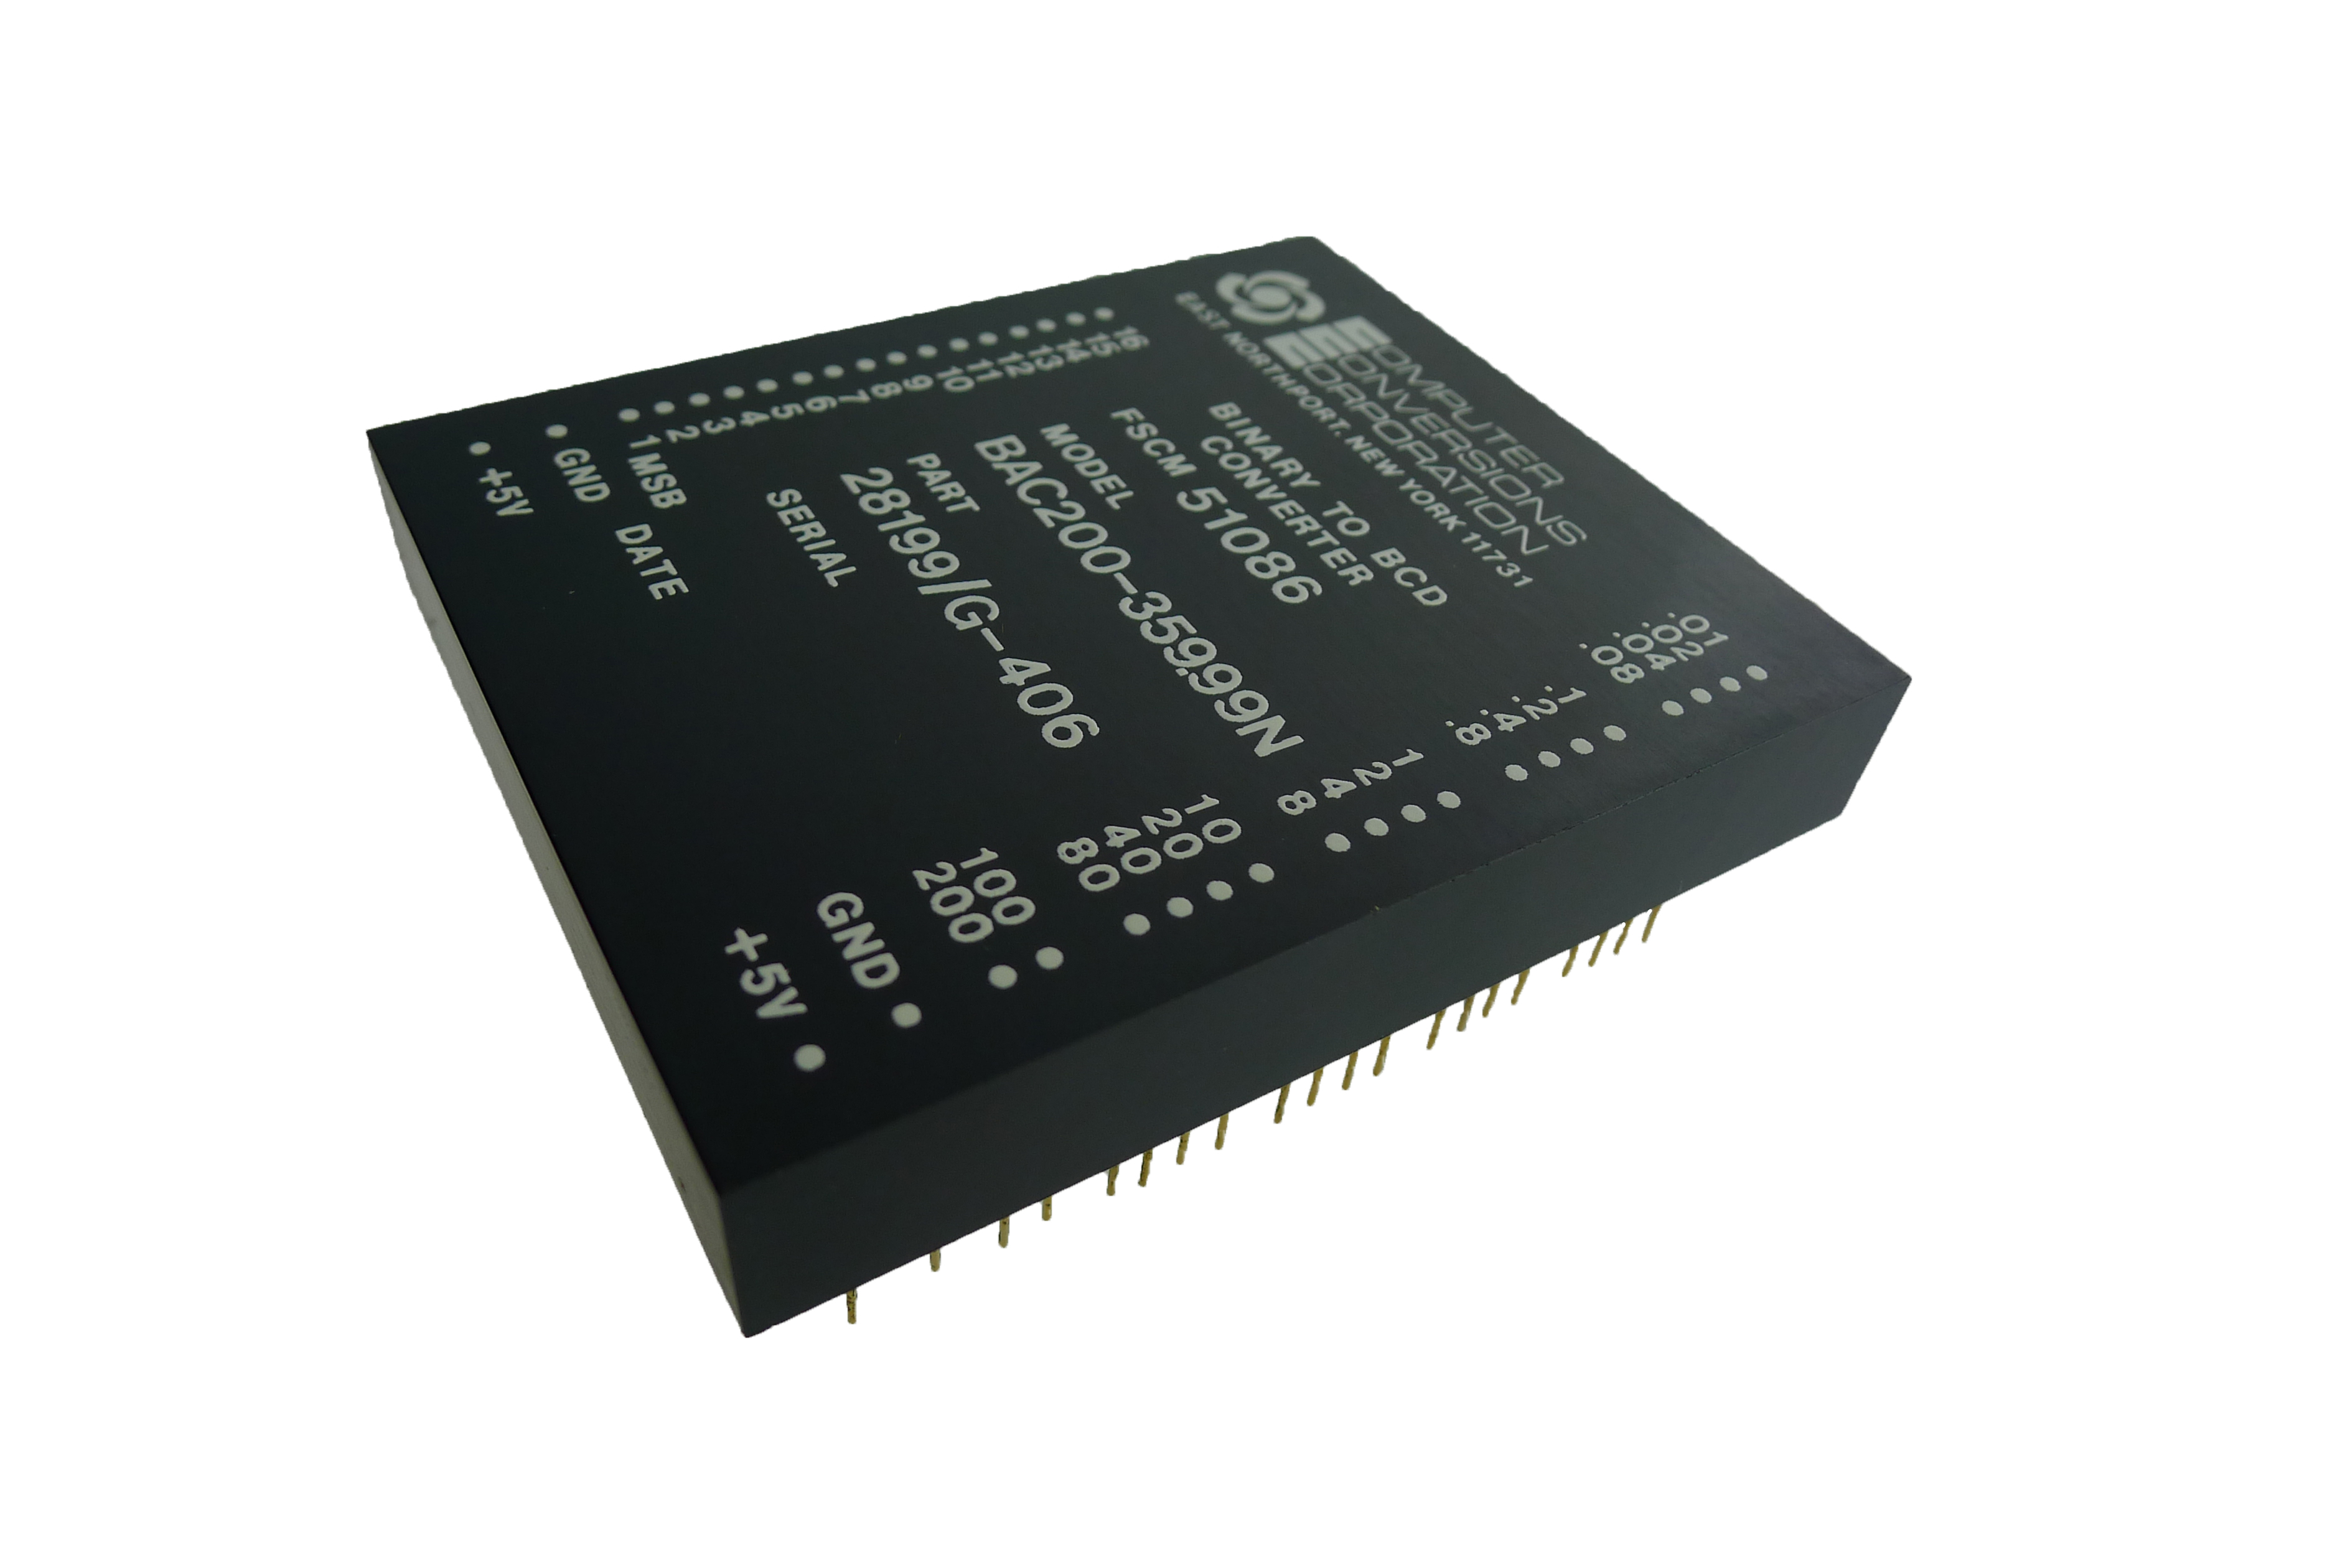 Bac200 Series Computer Conversions Corporation Bit Binary To Bcd Converter Circuit Click Zoom